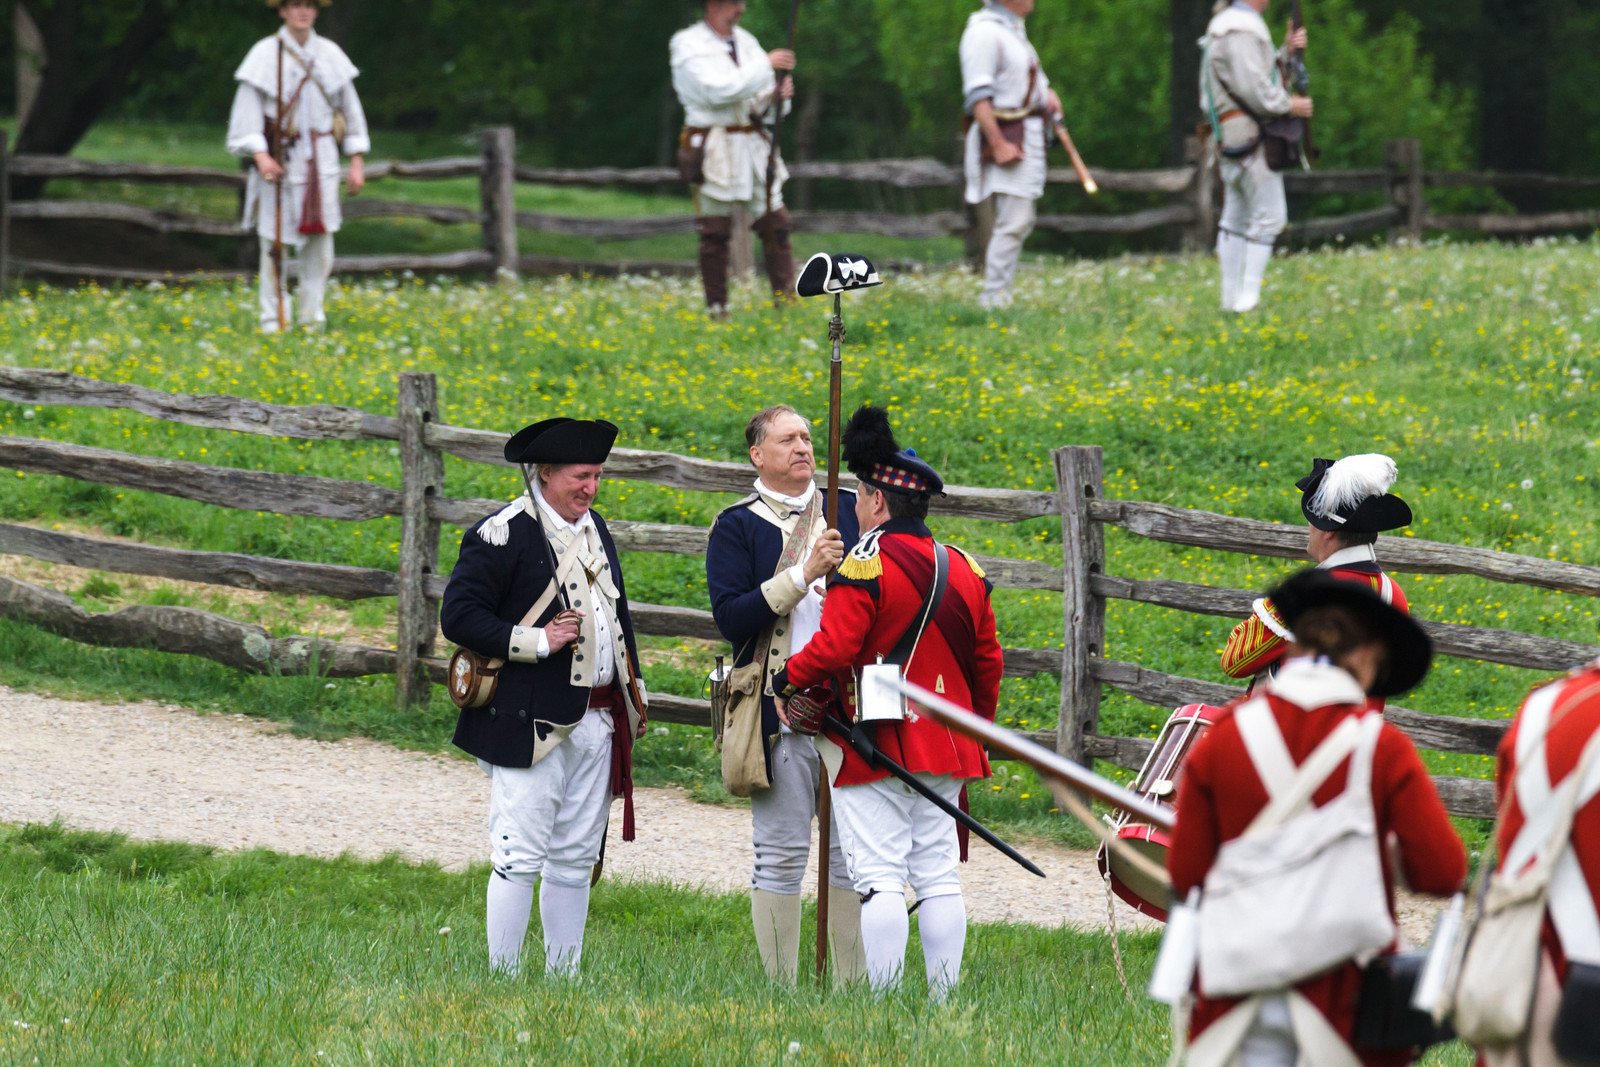 Field commanders negotiating terms to end the skirmish.